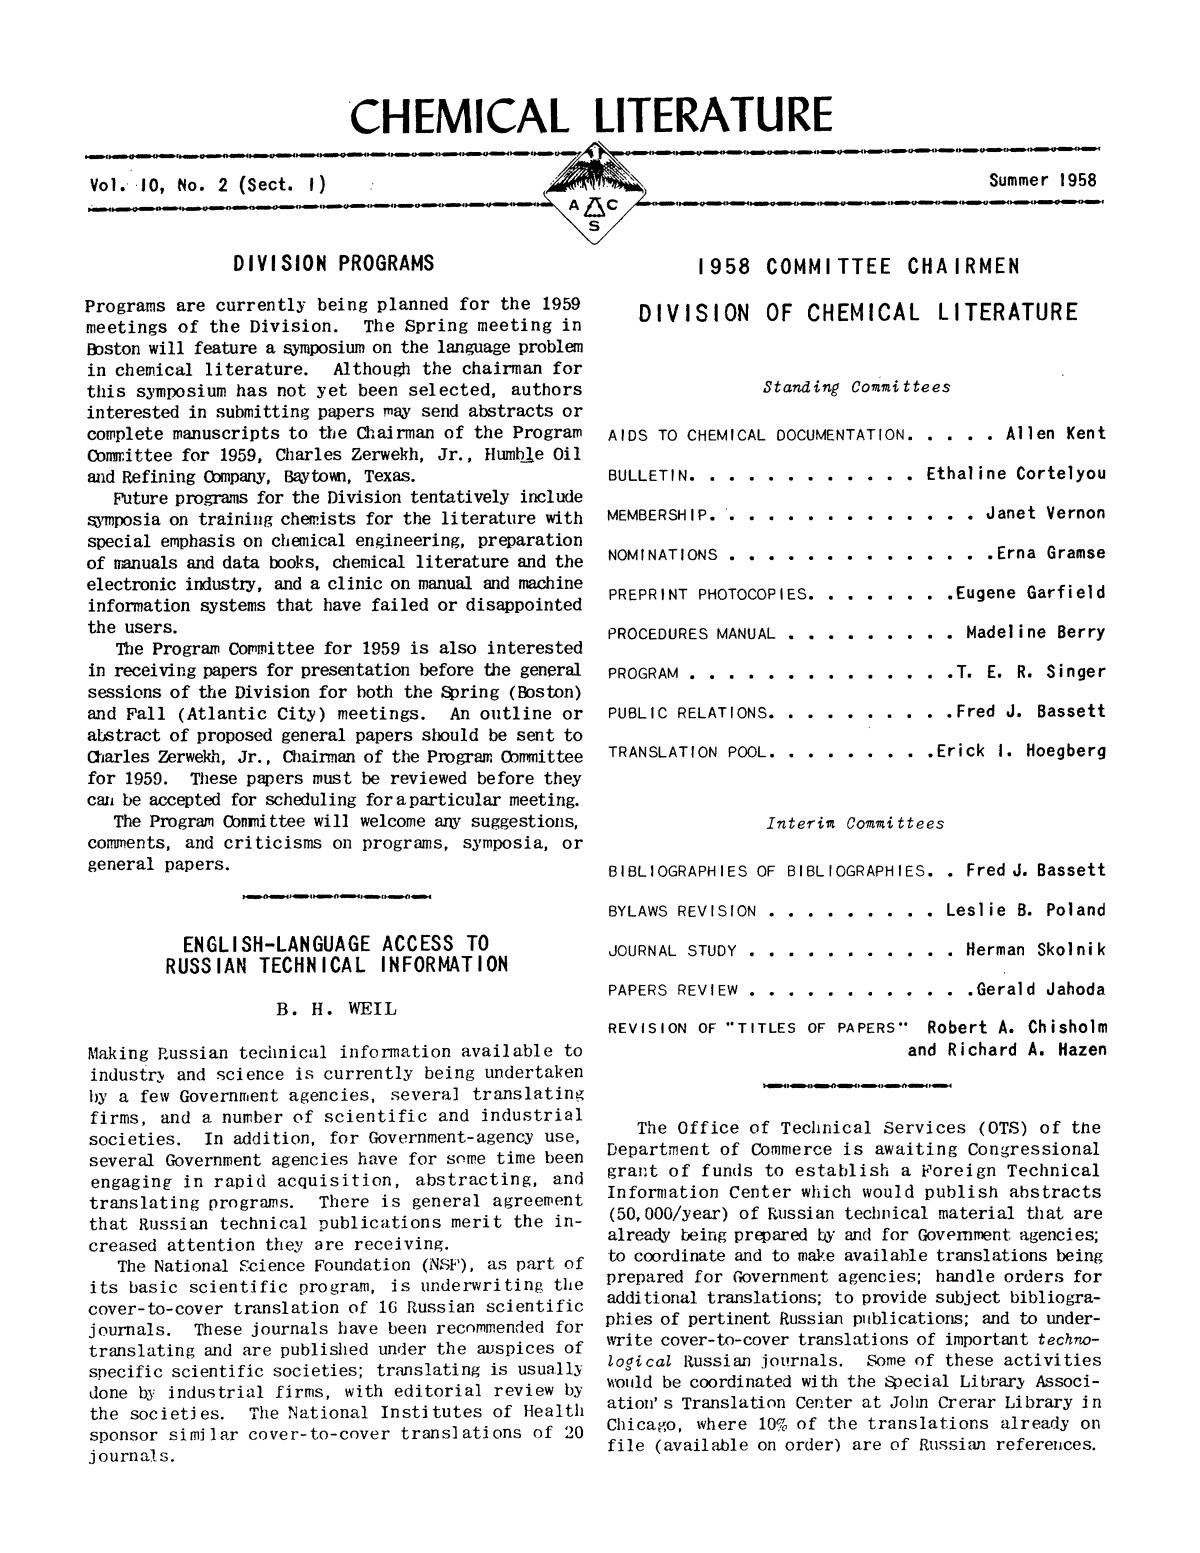 Chemical Literature, Volume 10, Number 2 (Sect. I), Summer 1958                                                                                                      1